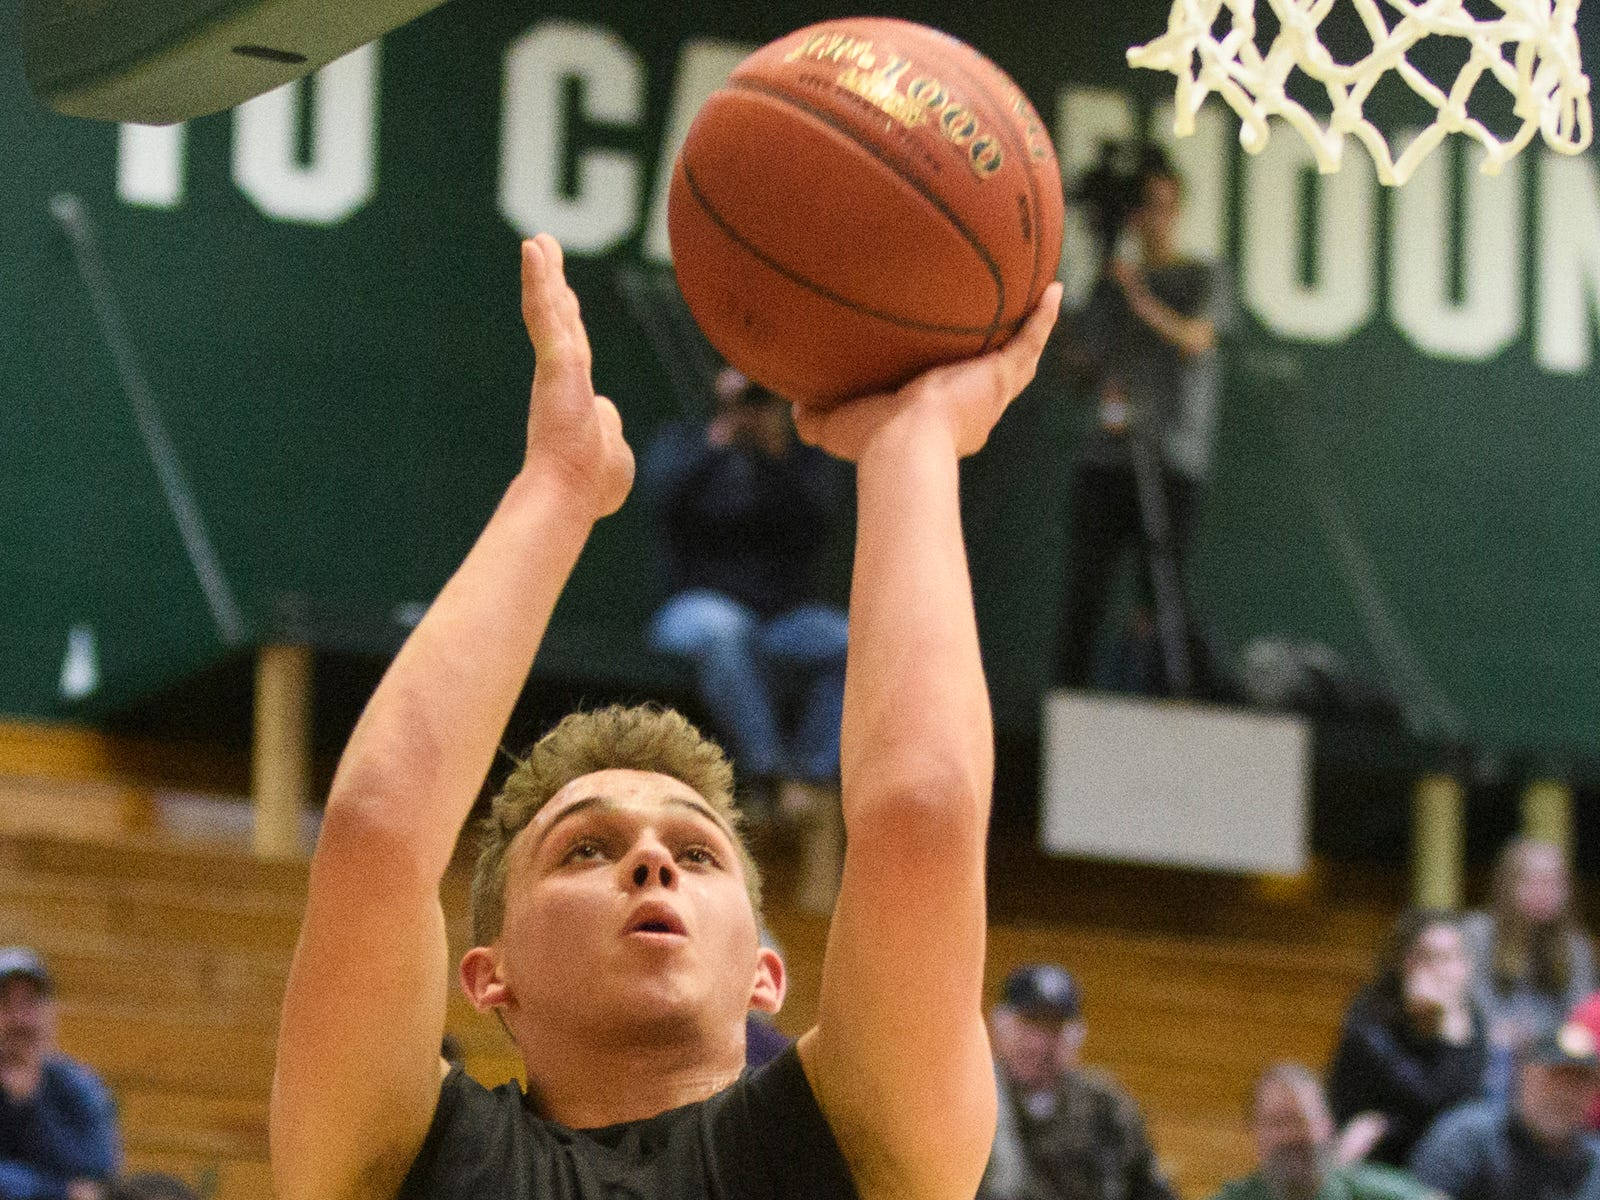 Rutland's Ethan Notte (15) leaps for a lay up during the boys DI semi final basketball game between the Rutland Raiders and the Mount Mansfield Cougars at Patrick Gym on Monday night March 11, 2019 in Burlington, Vermont.